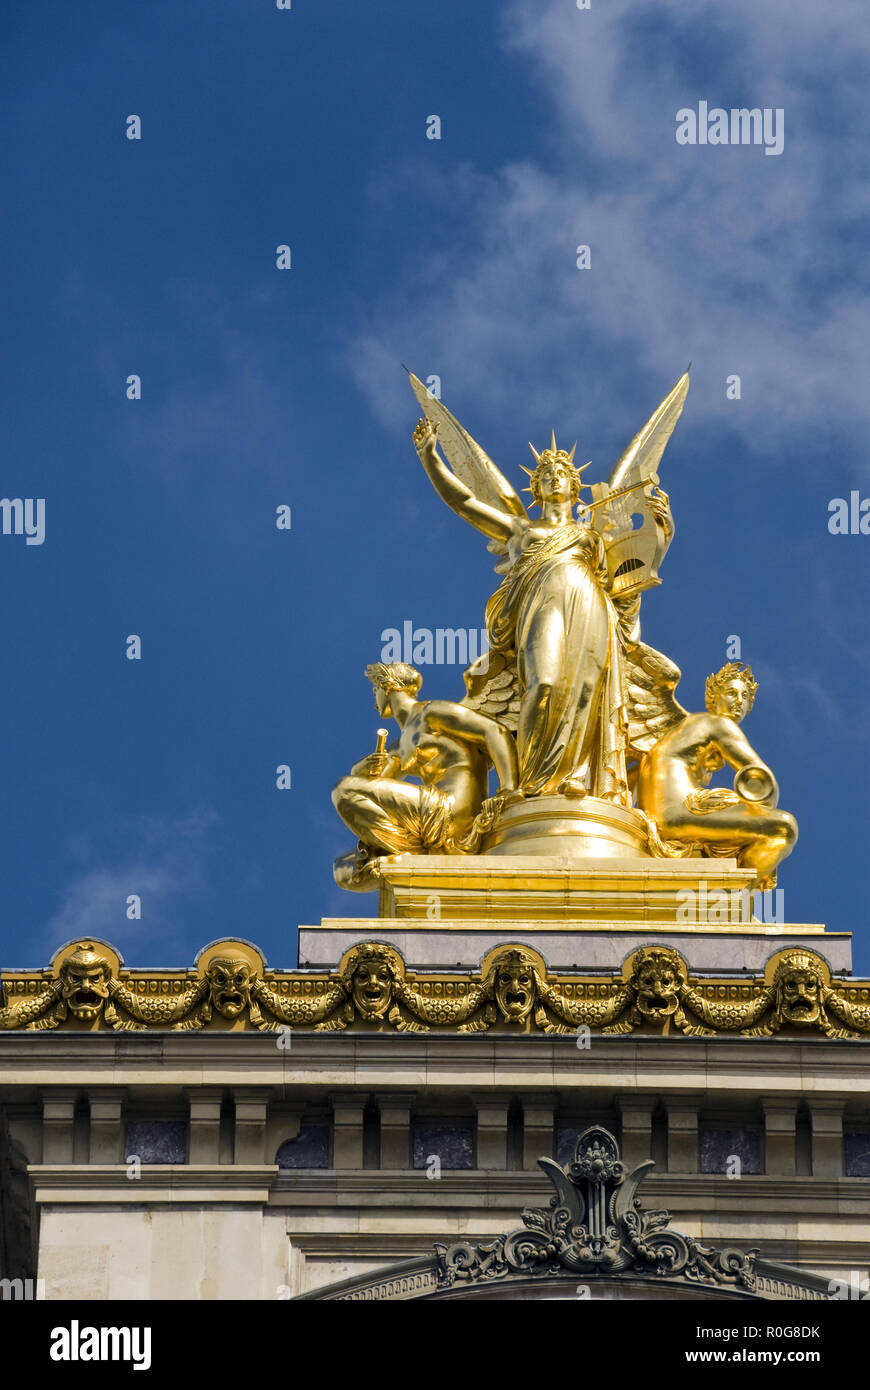 "A gold sculptural group atop the Palais Garnier opera house, famous as the setting for Leroux's 1910 novel 'The Phantom of the Opera,"" Paris, France. - Stock Image"